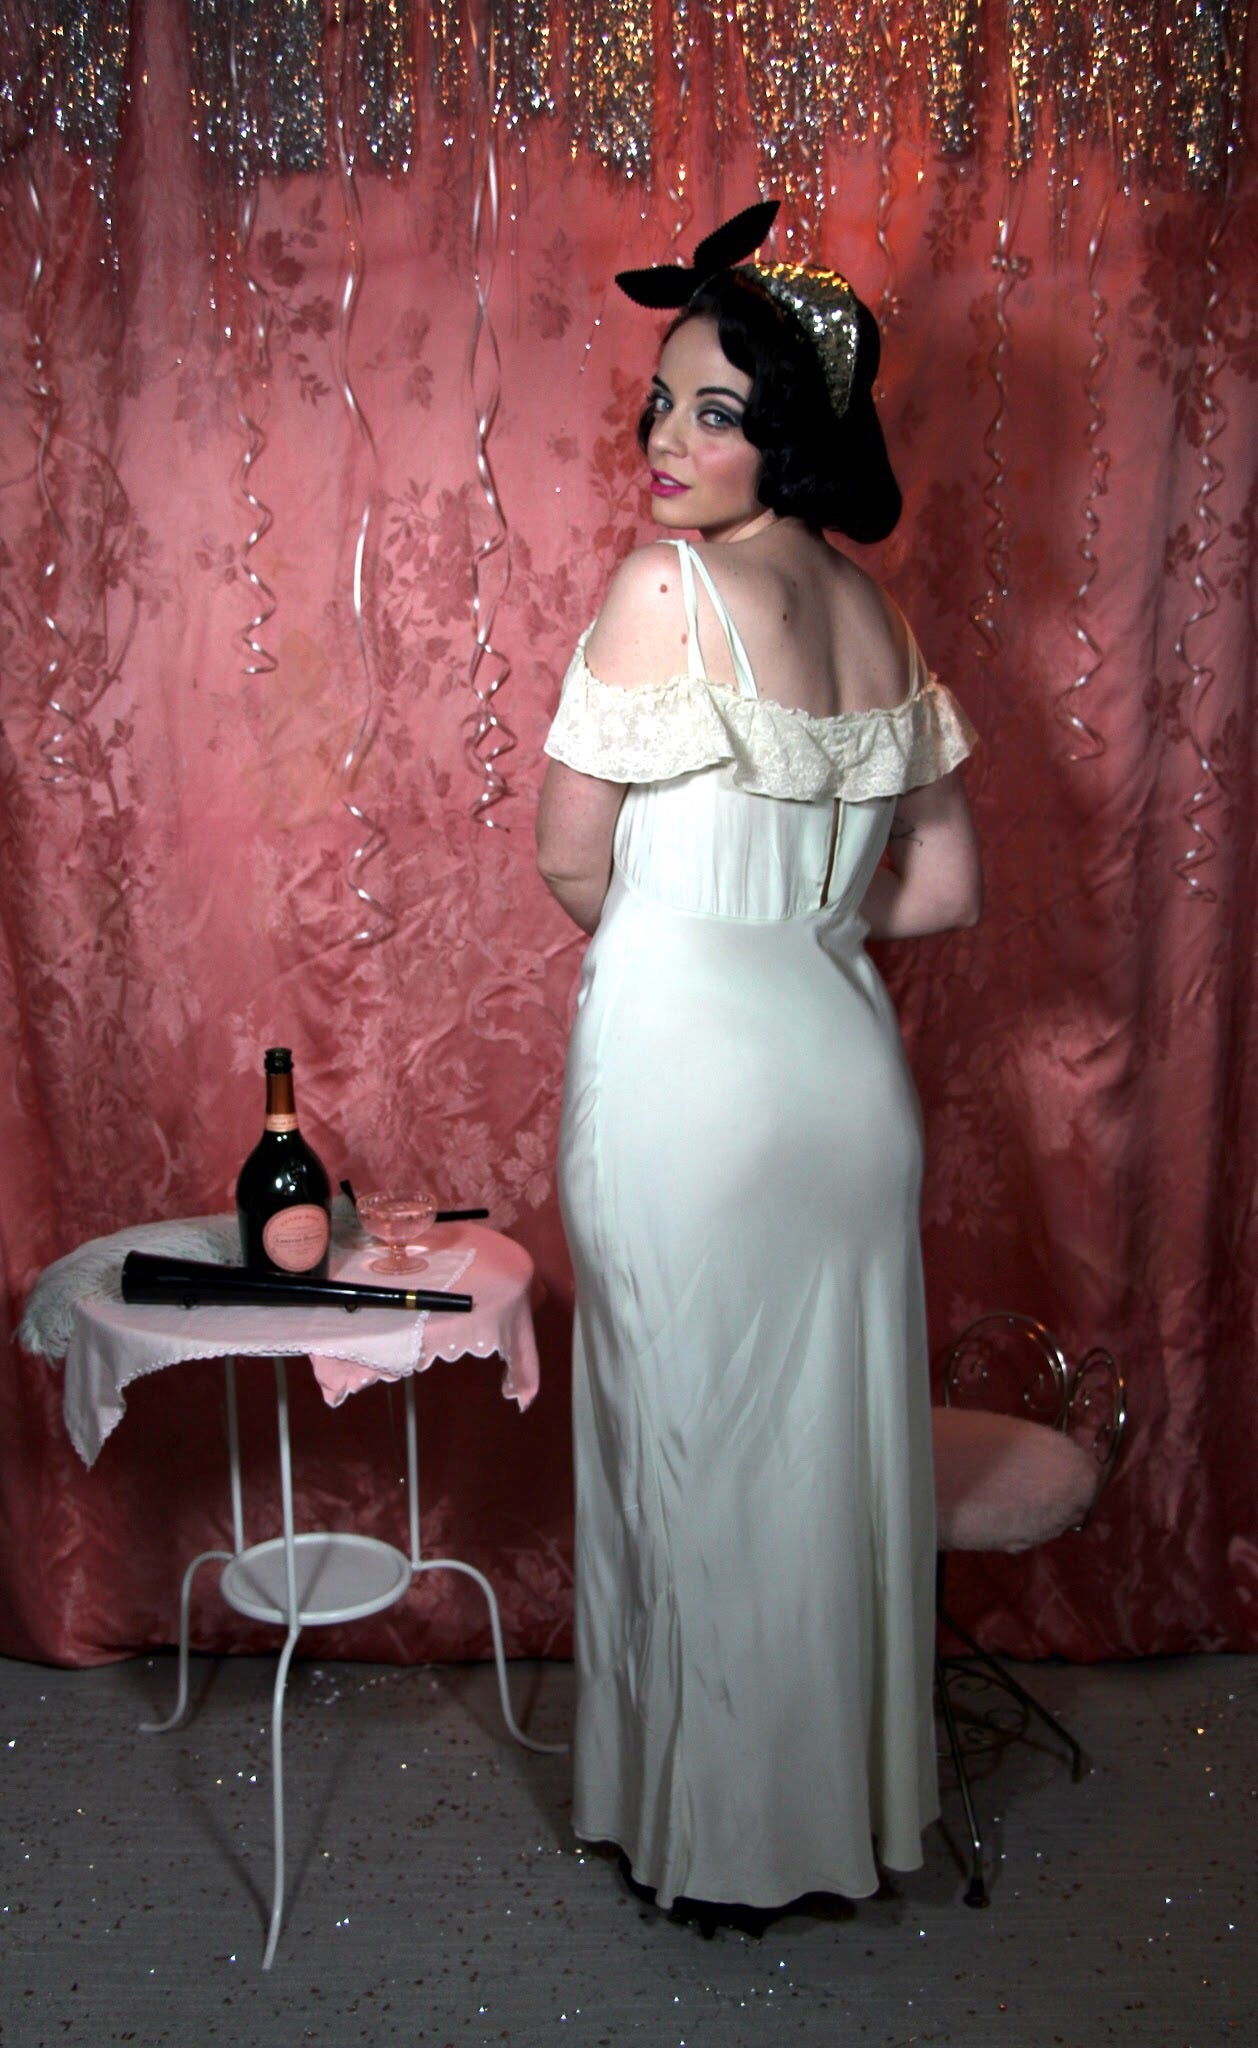 Pistachio off shoulder 1930's nightgown by Colleen Lingerie M/L #059